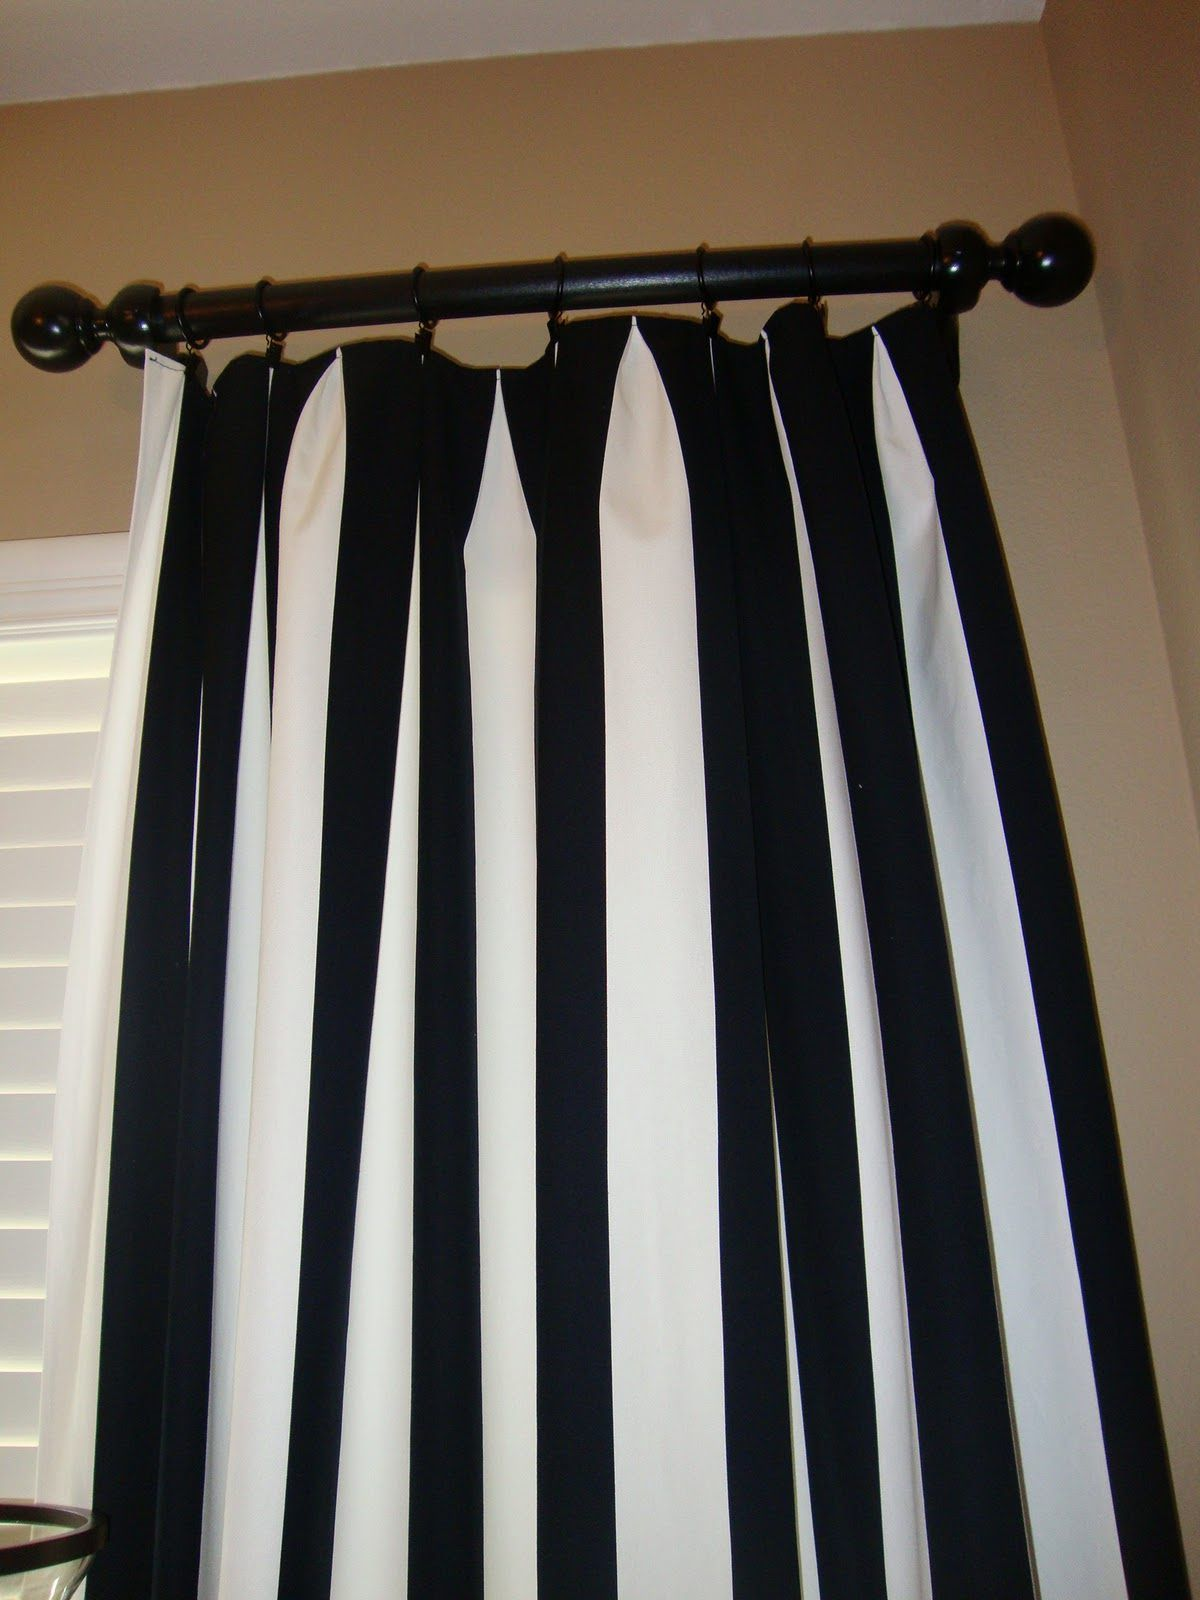 Bw Curtains Vertical Striped Curtains Black Curtains White Canopy